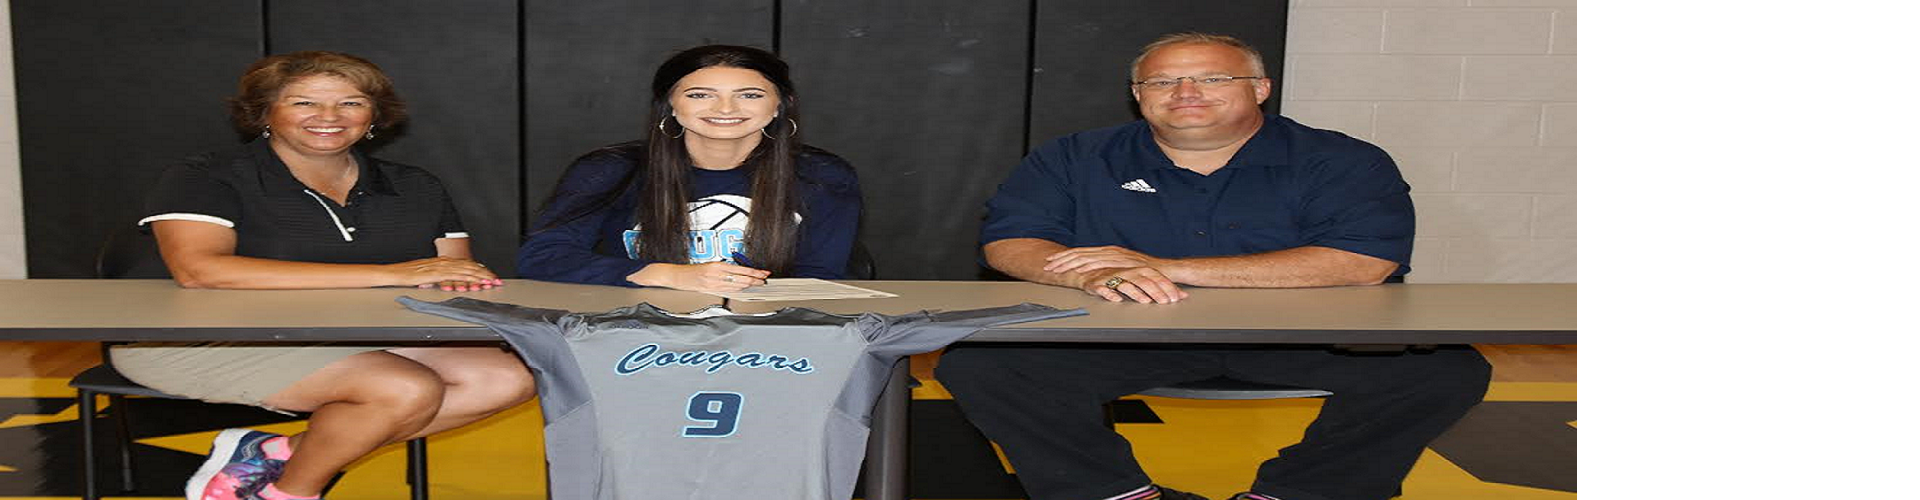 Halle Martin signs with CBC Cougars Volleyball team!